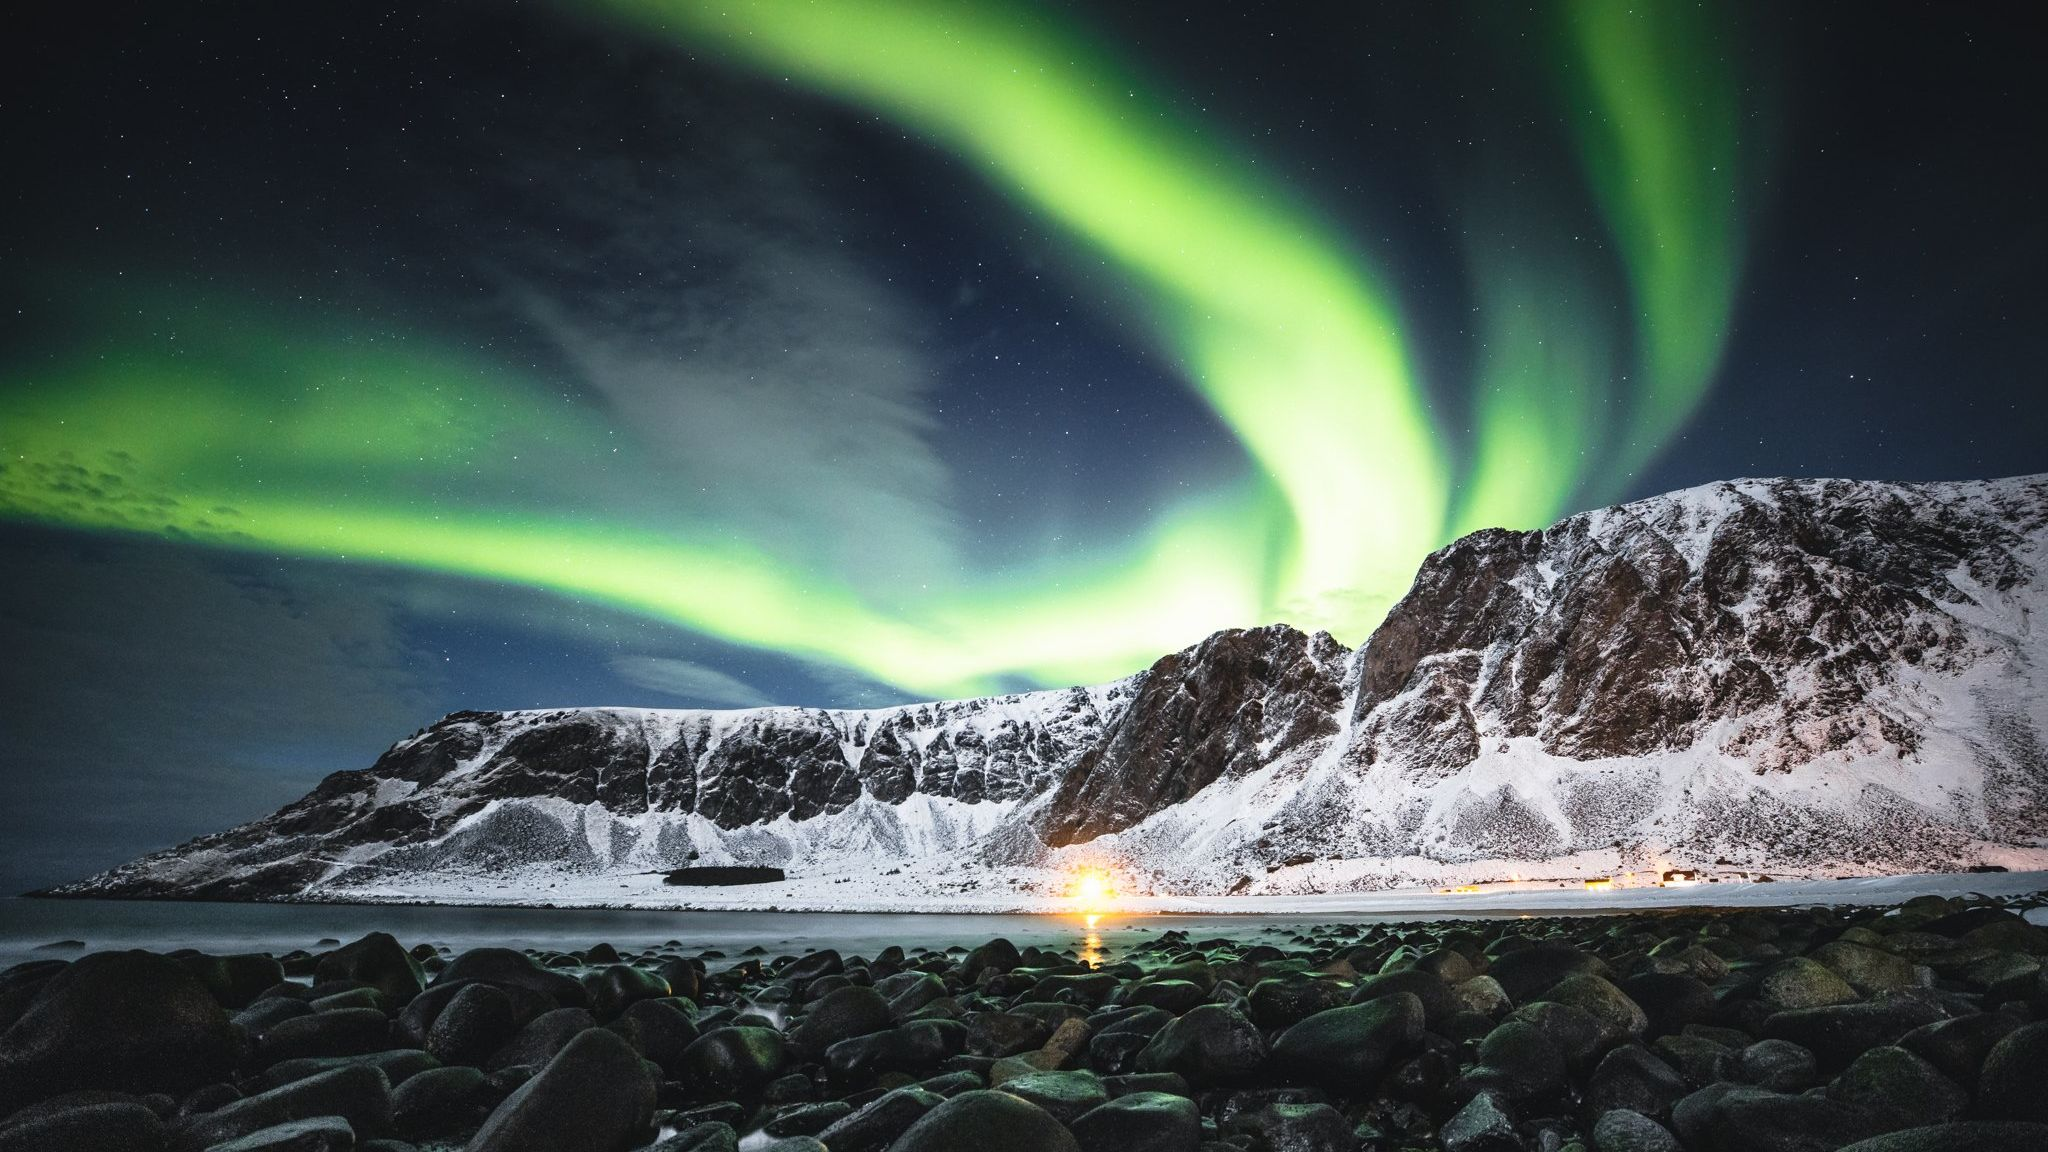 The Northern lights shine brightly across the mountains and the beach below.